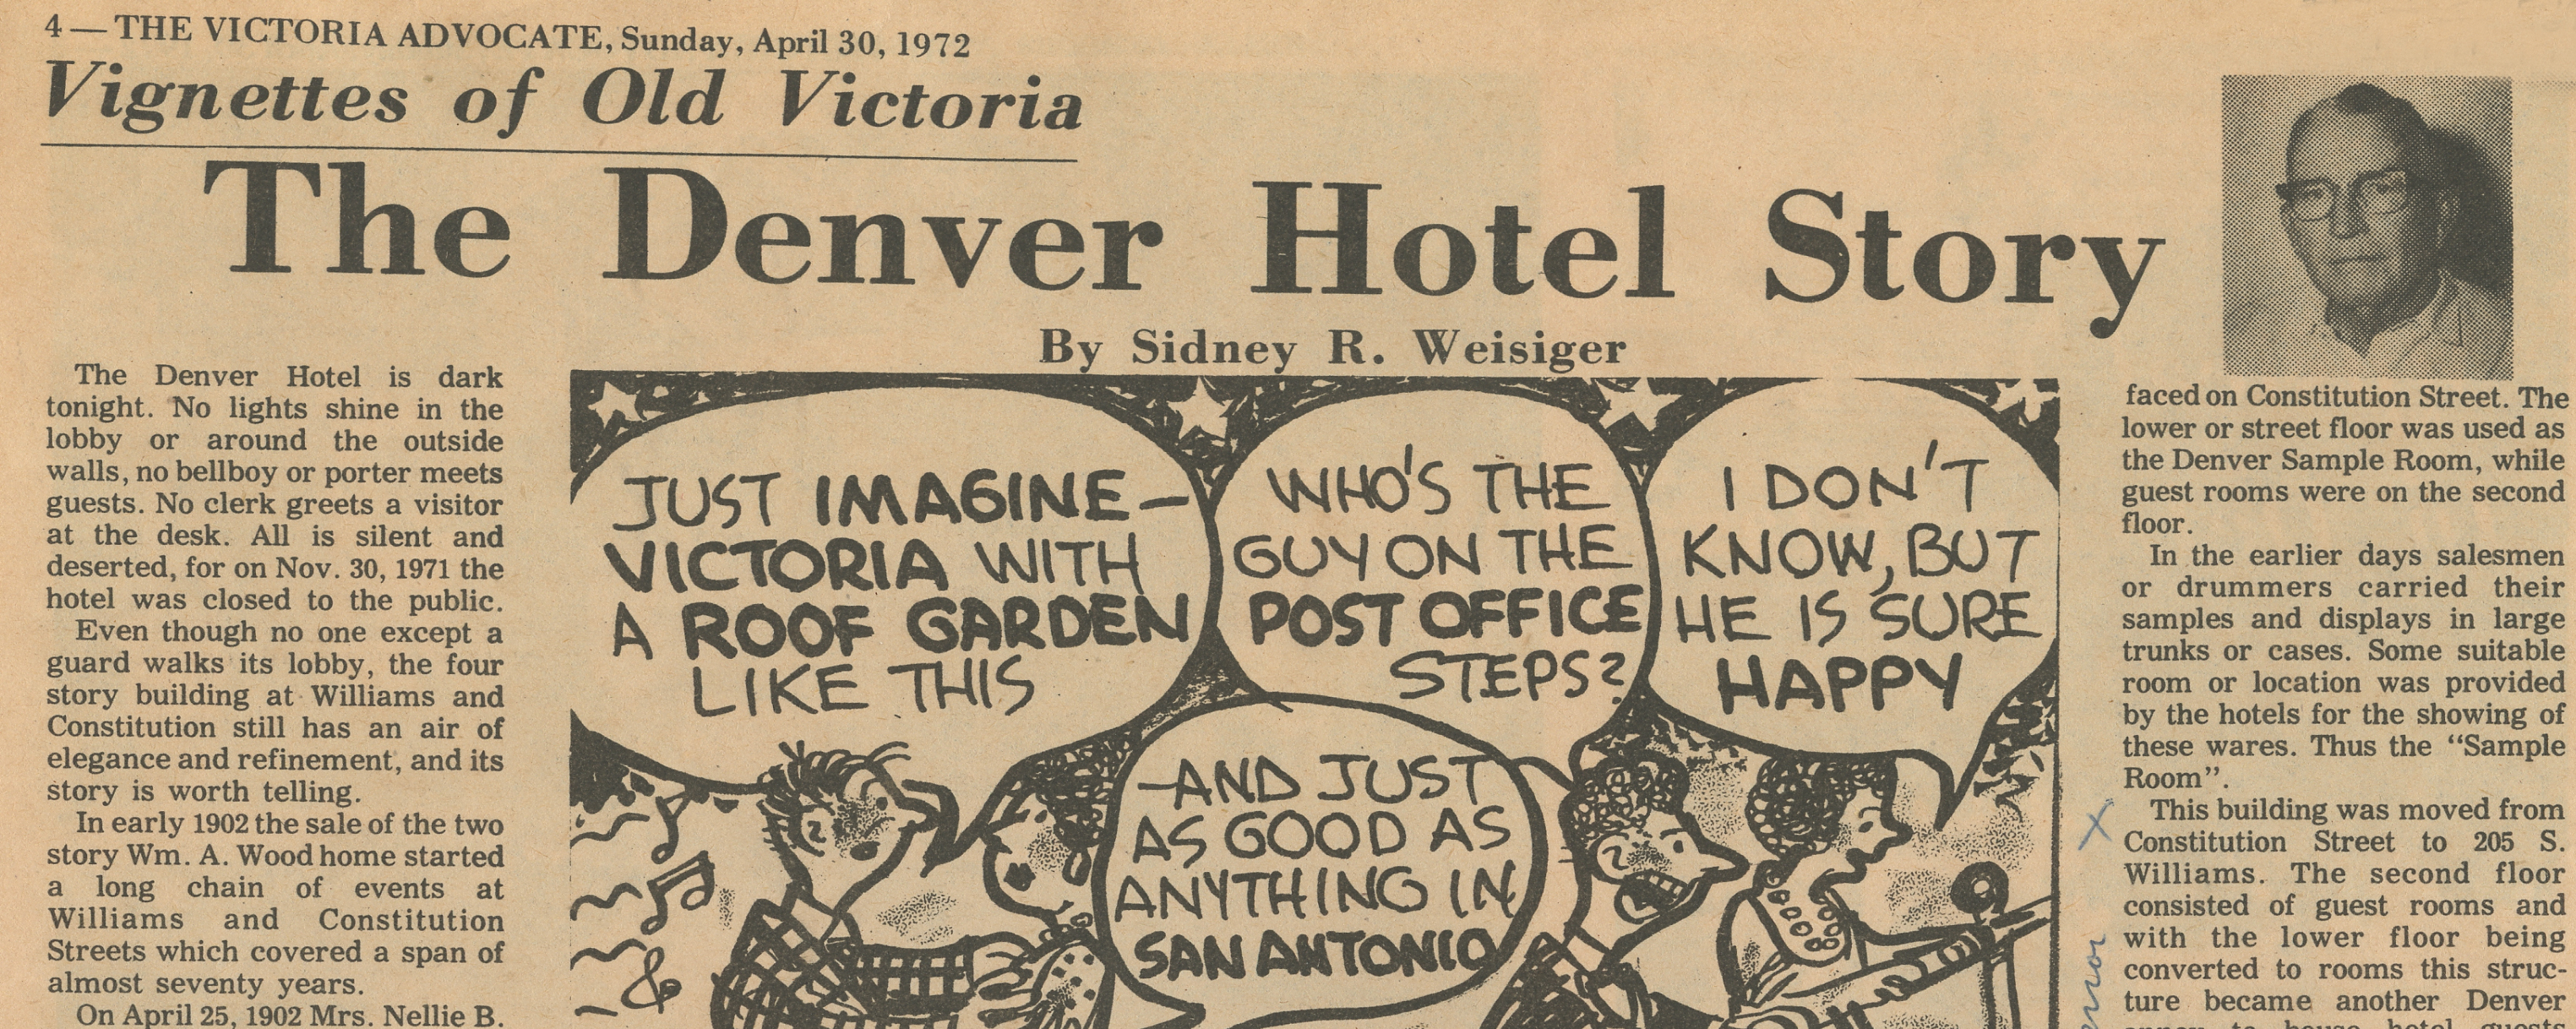 Newspaper Item from the Weisiger Collection